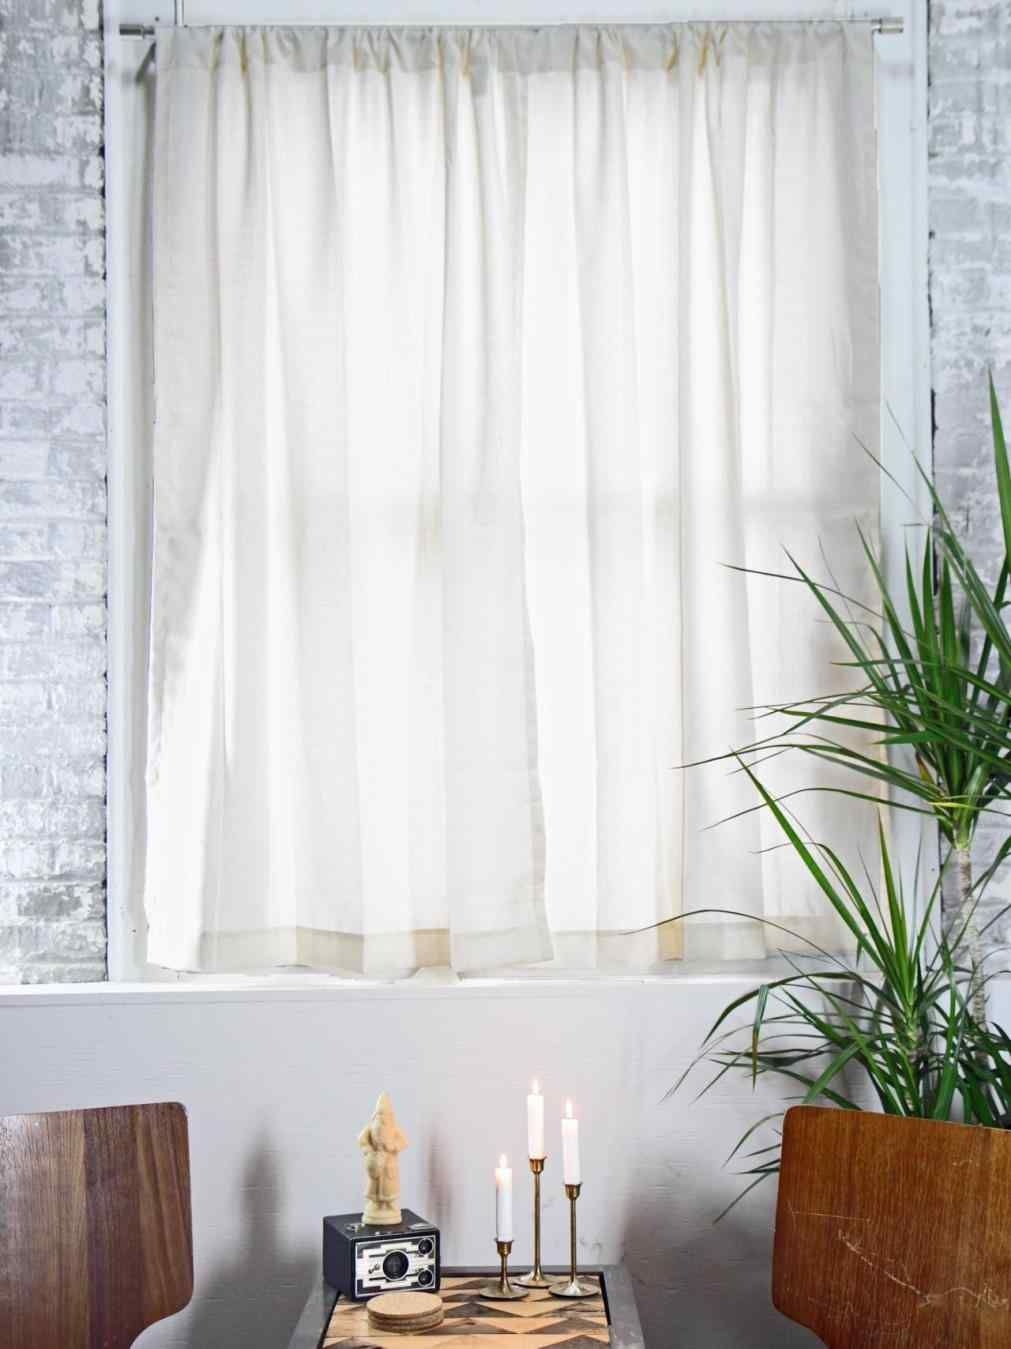 19 Top Curtains Inside Window Frame You Must See Webnera